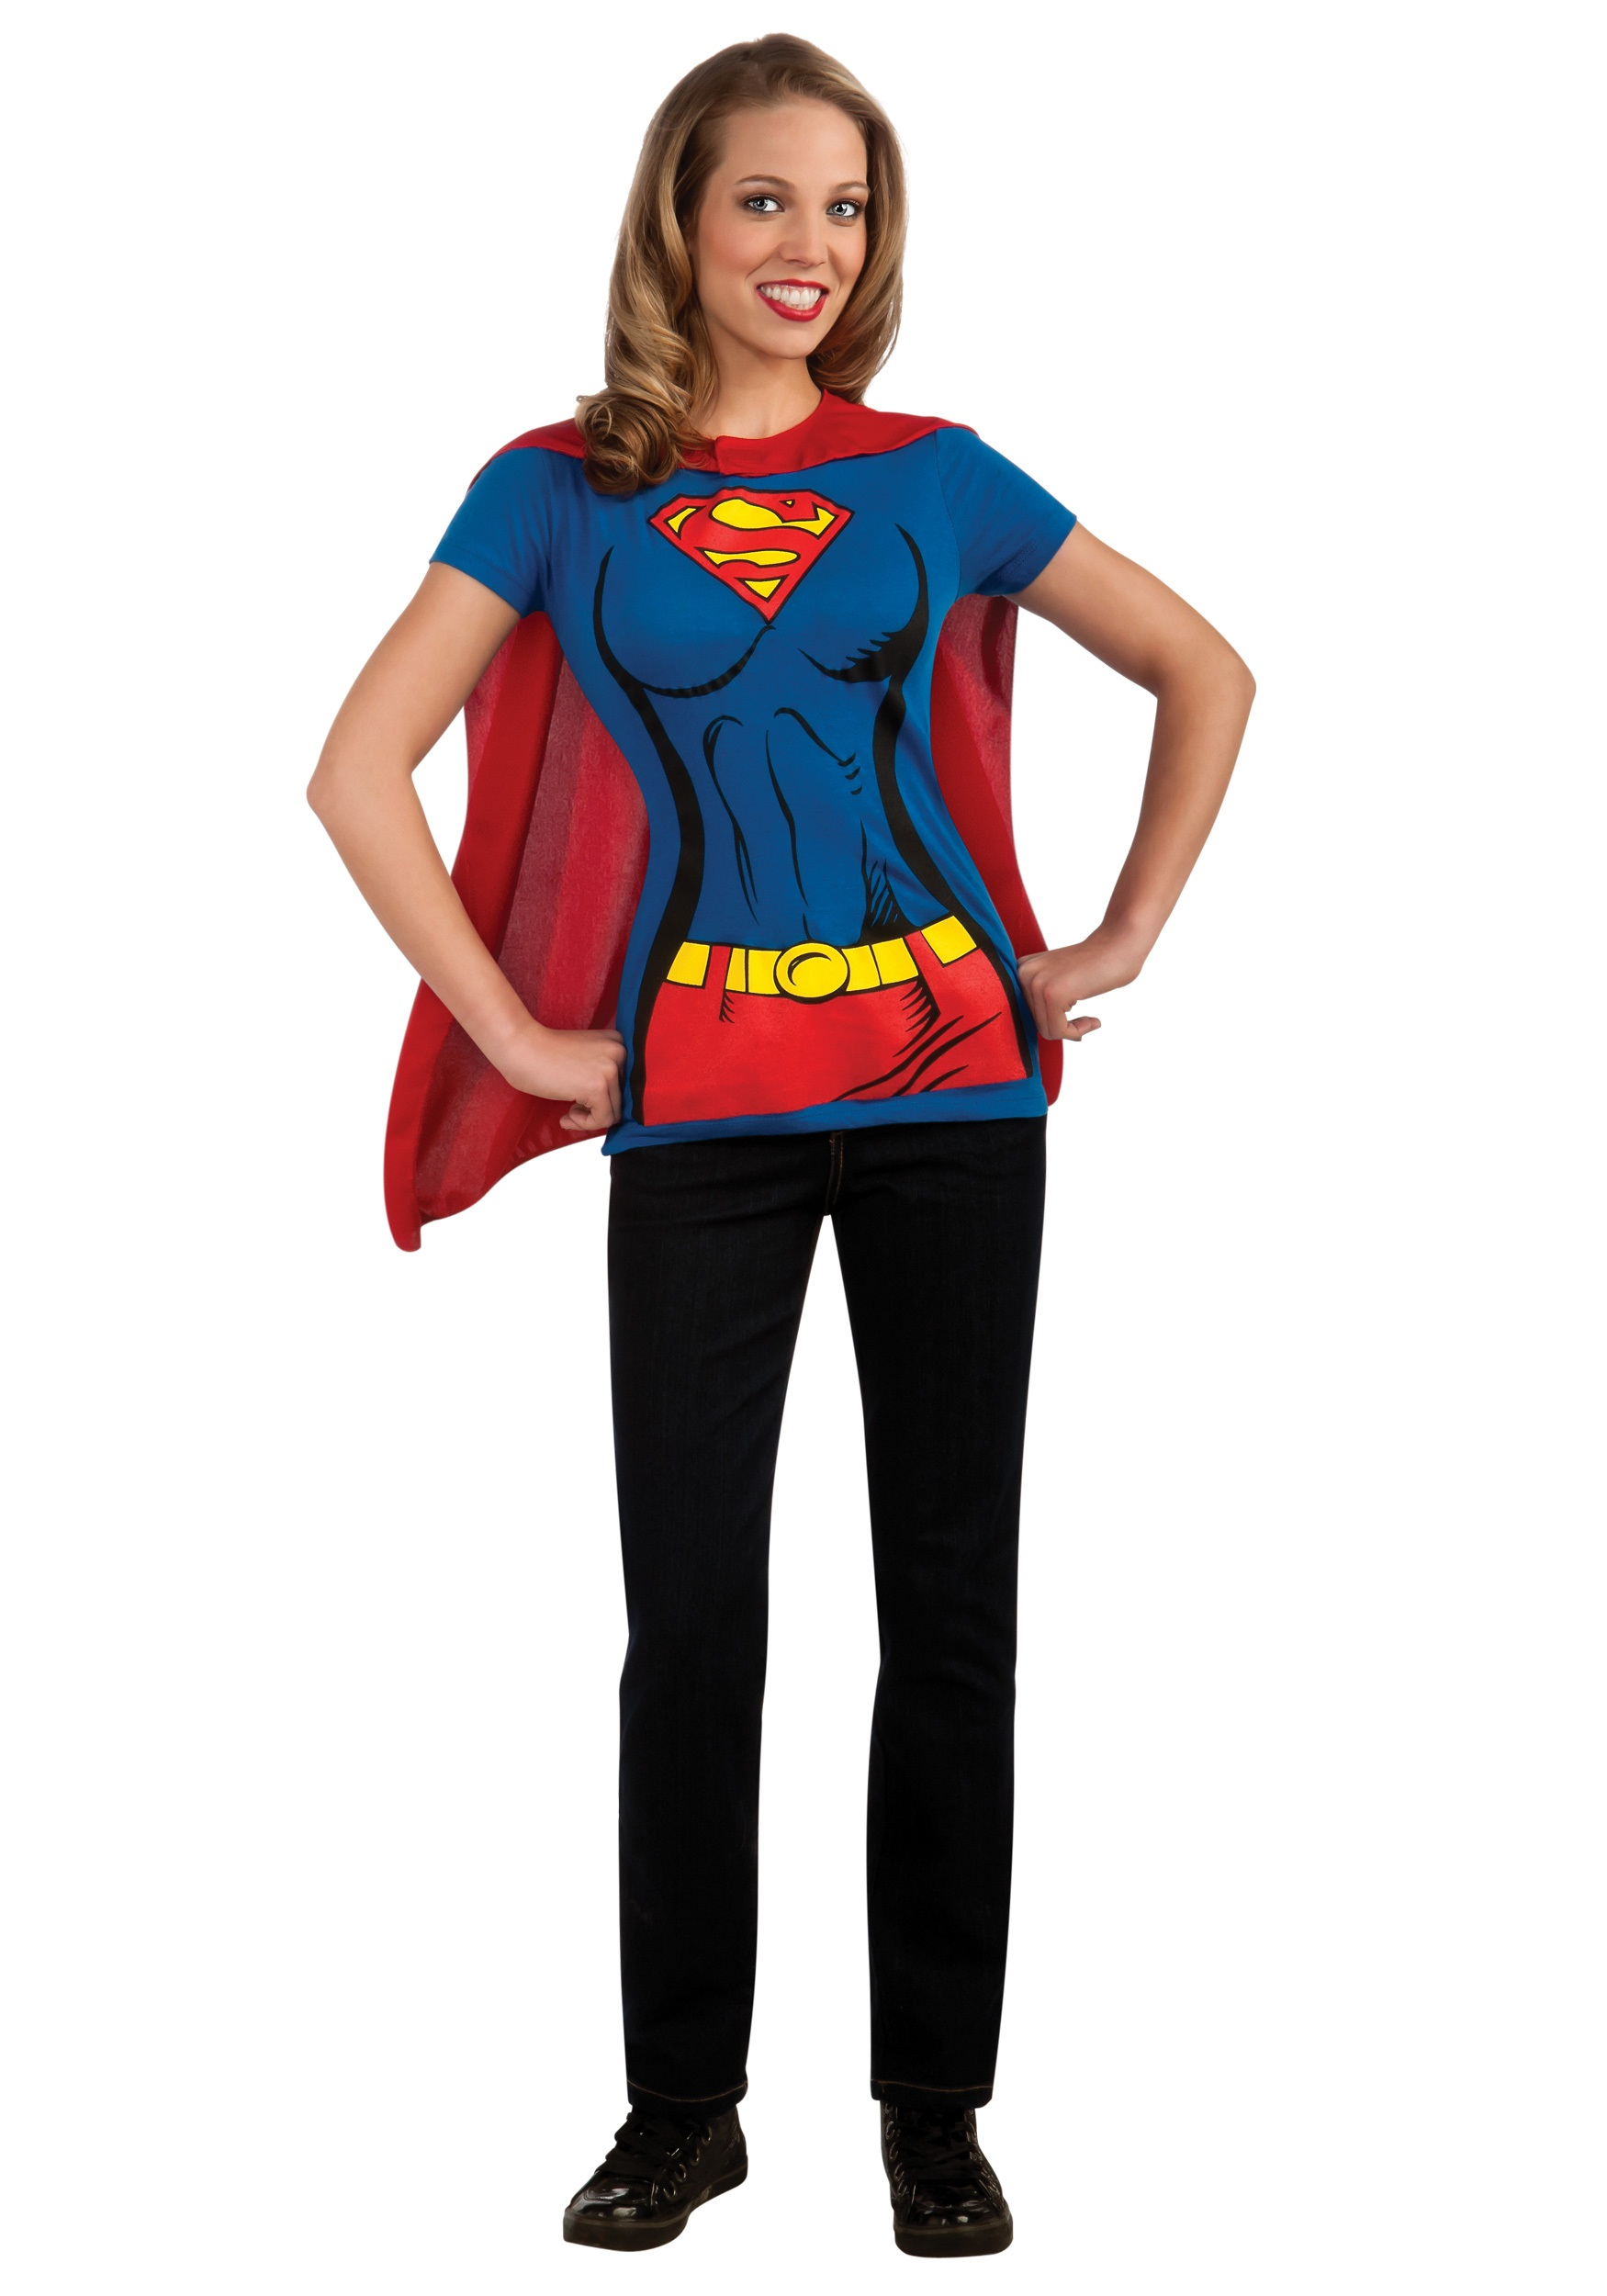 Supergirl T-Shirt Costume For Women - Easy Superhero - Super Easy Halloween Costumes